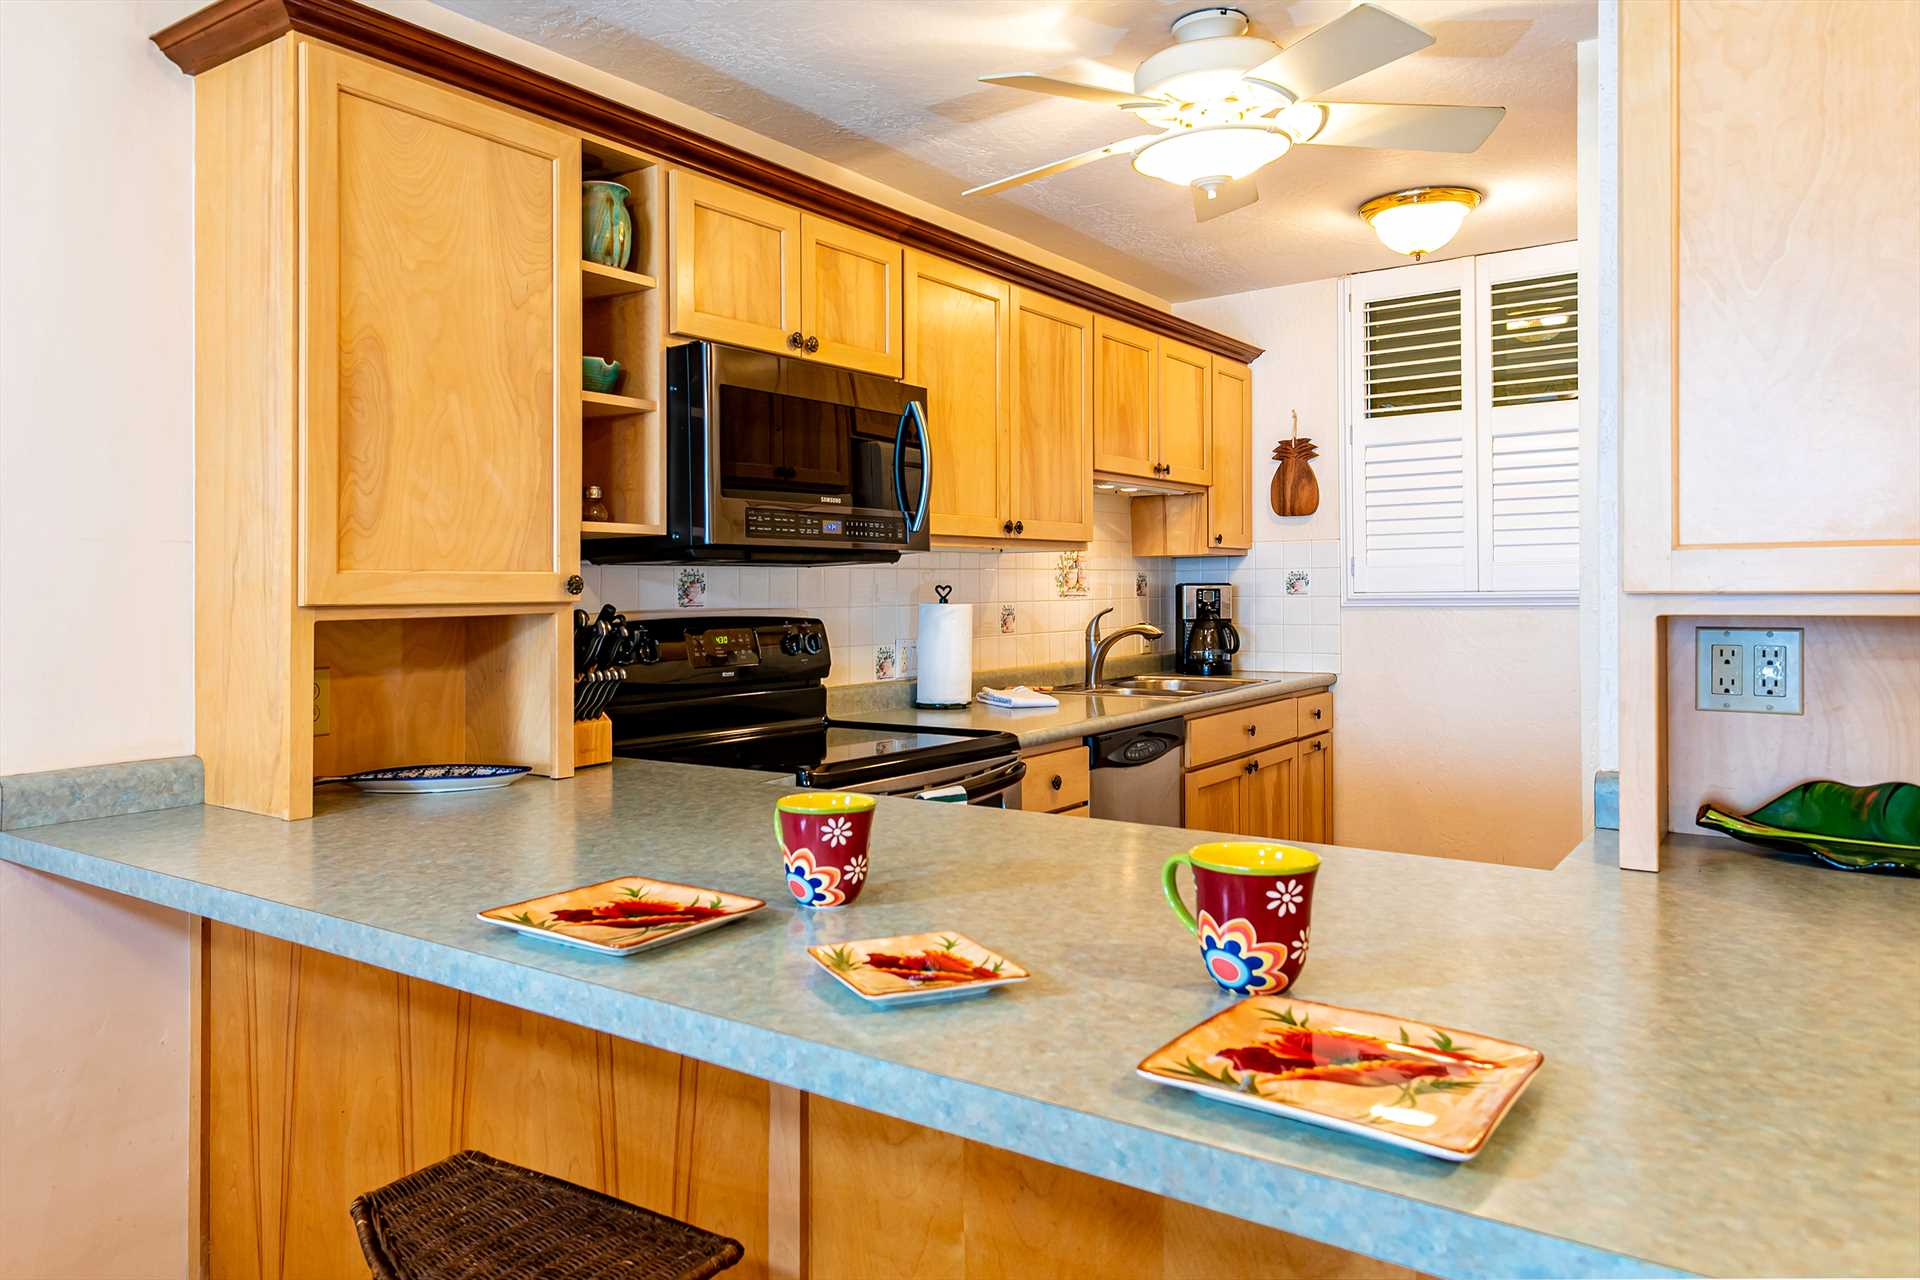 Well-appointed kitchen to make your meals